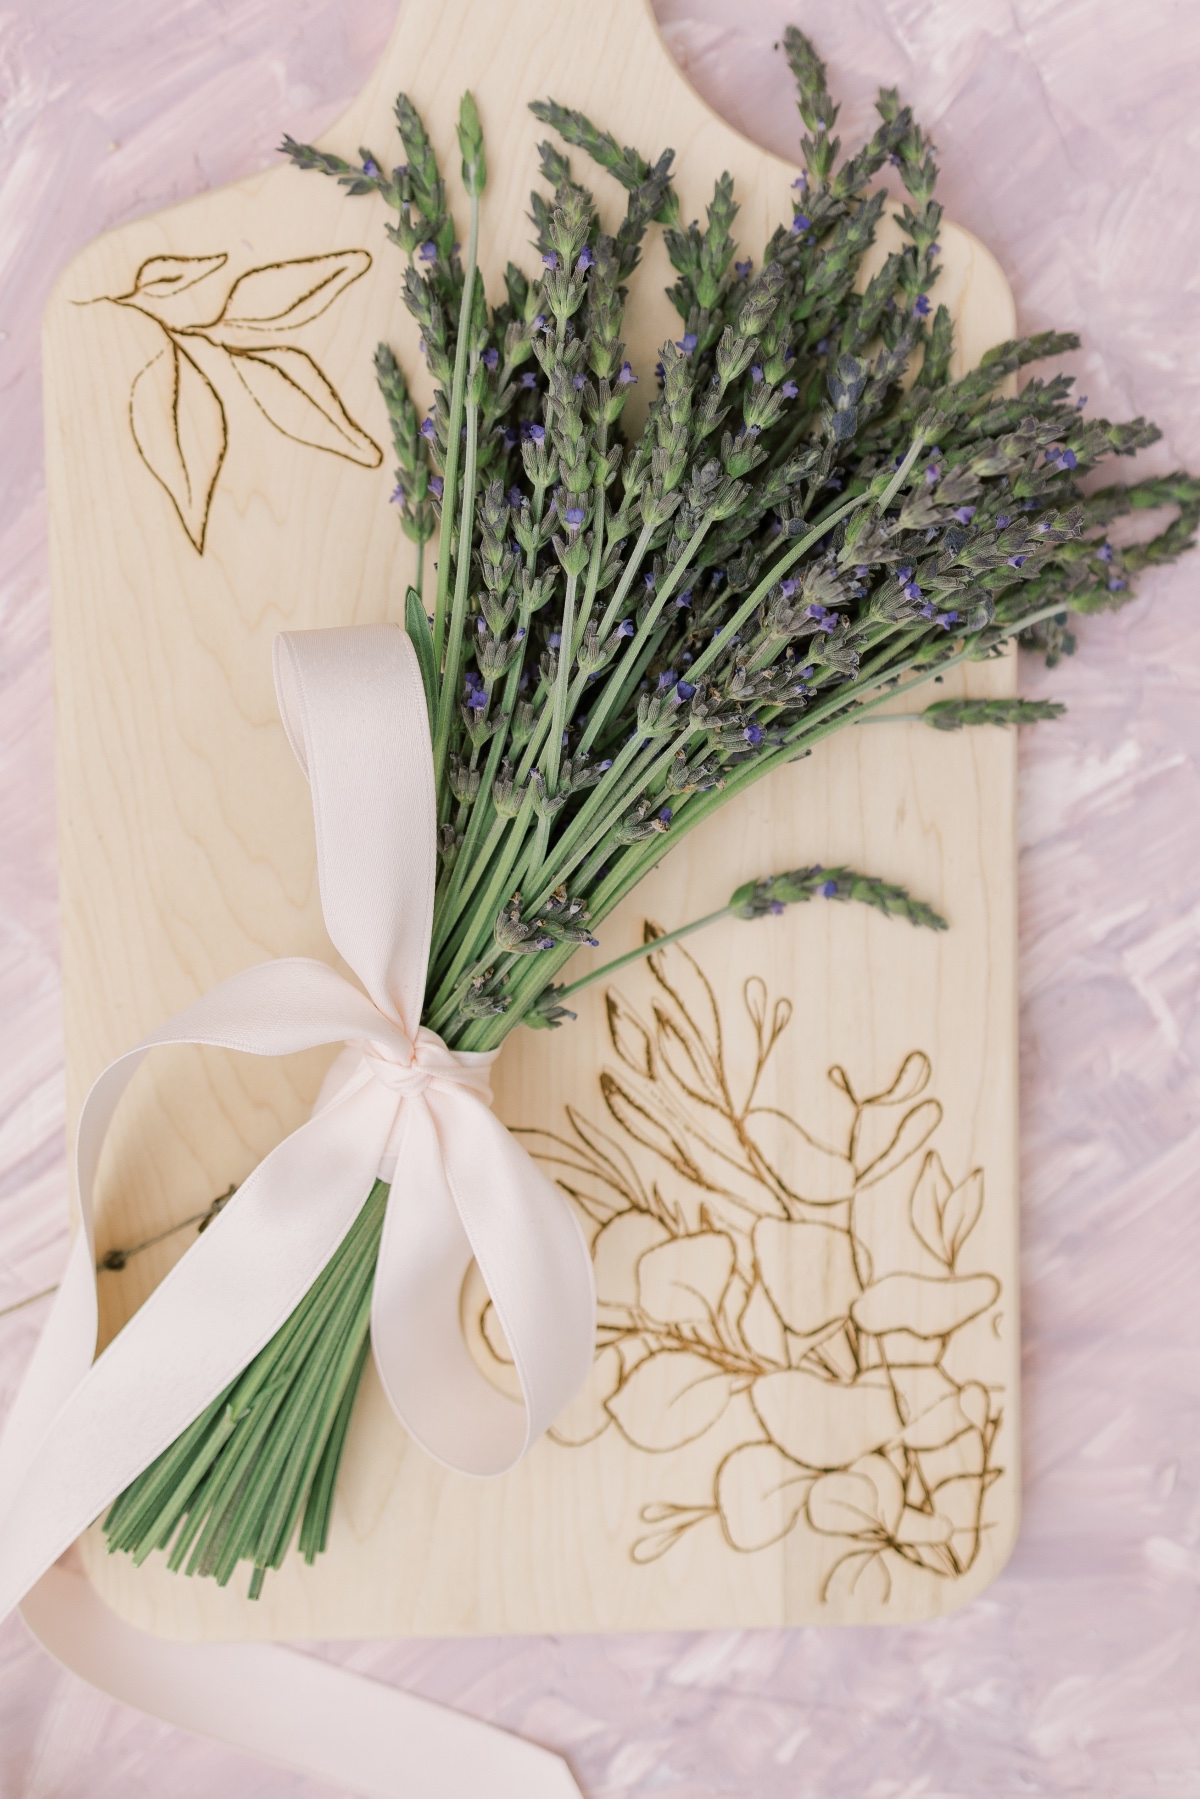 Delicate Luxe Micro-Wedding with Pastels at Sunstone Winery